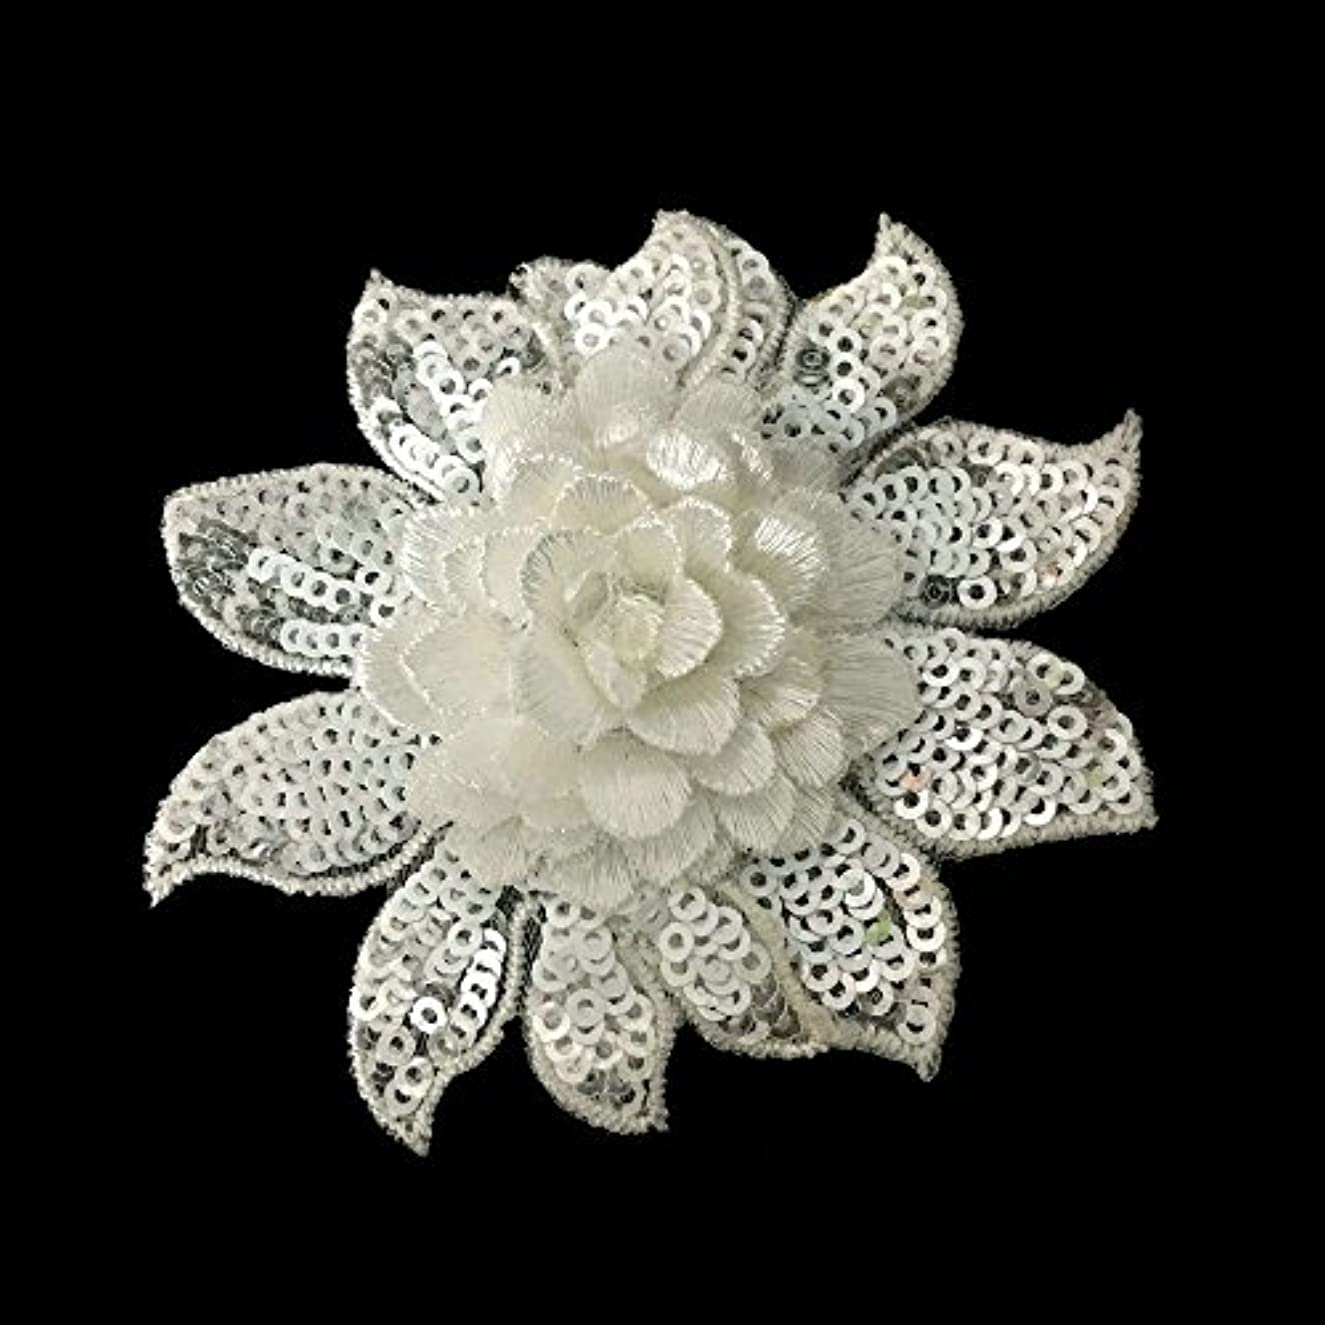 1pcs White Sequin Embroiery Flower Sew On Patches Arts Crafts Applique 3.2inch